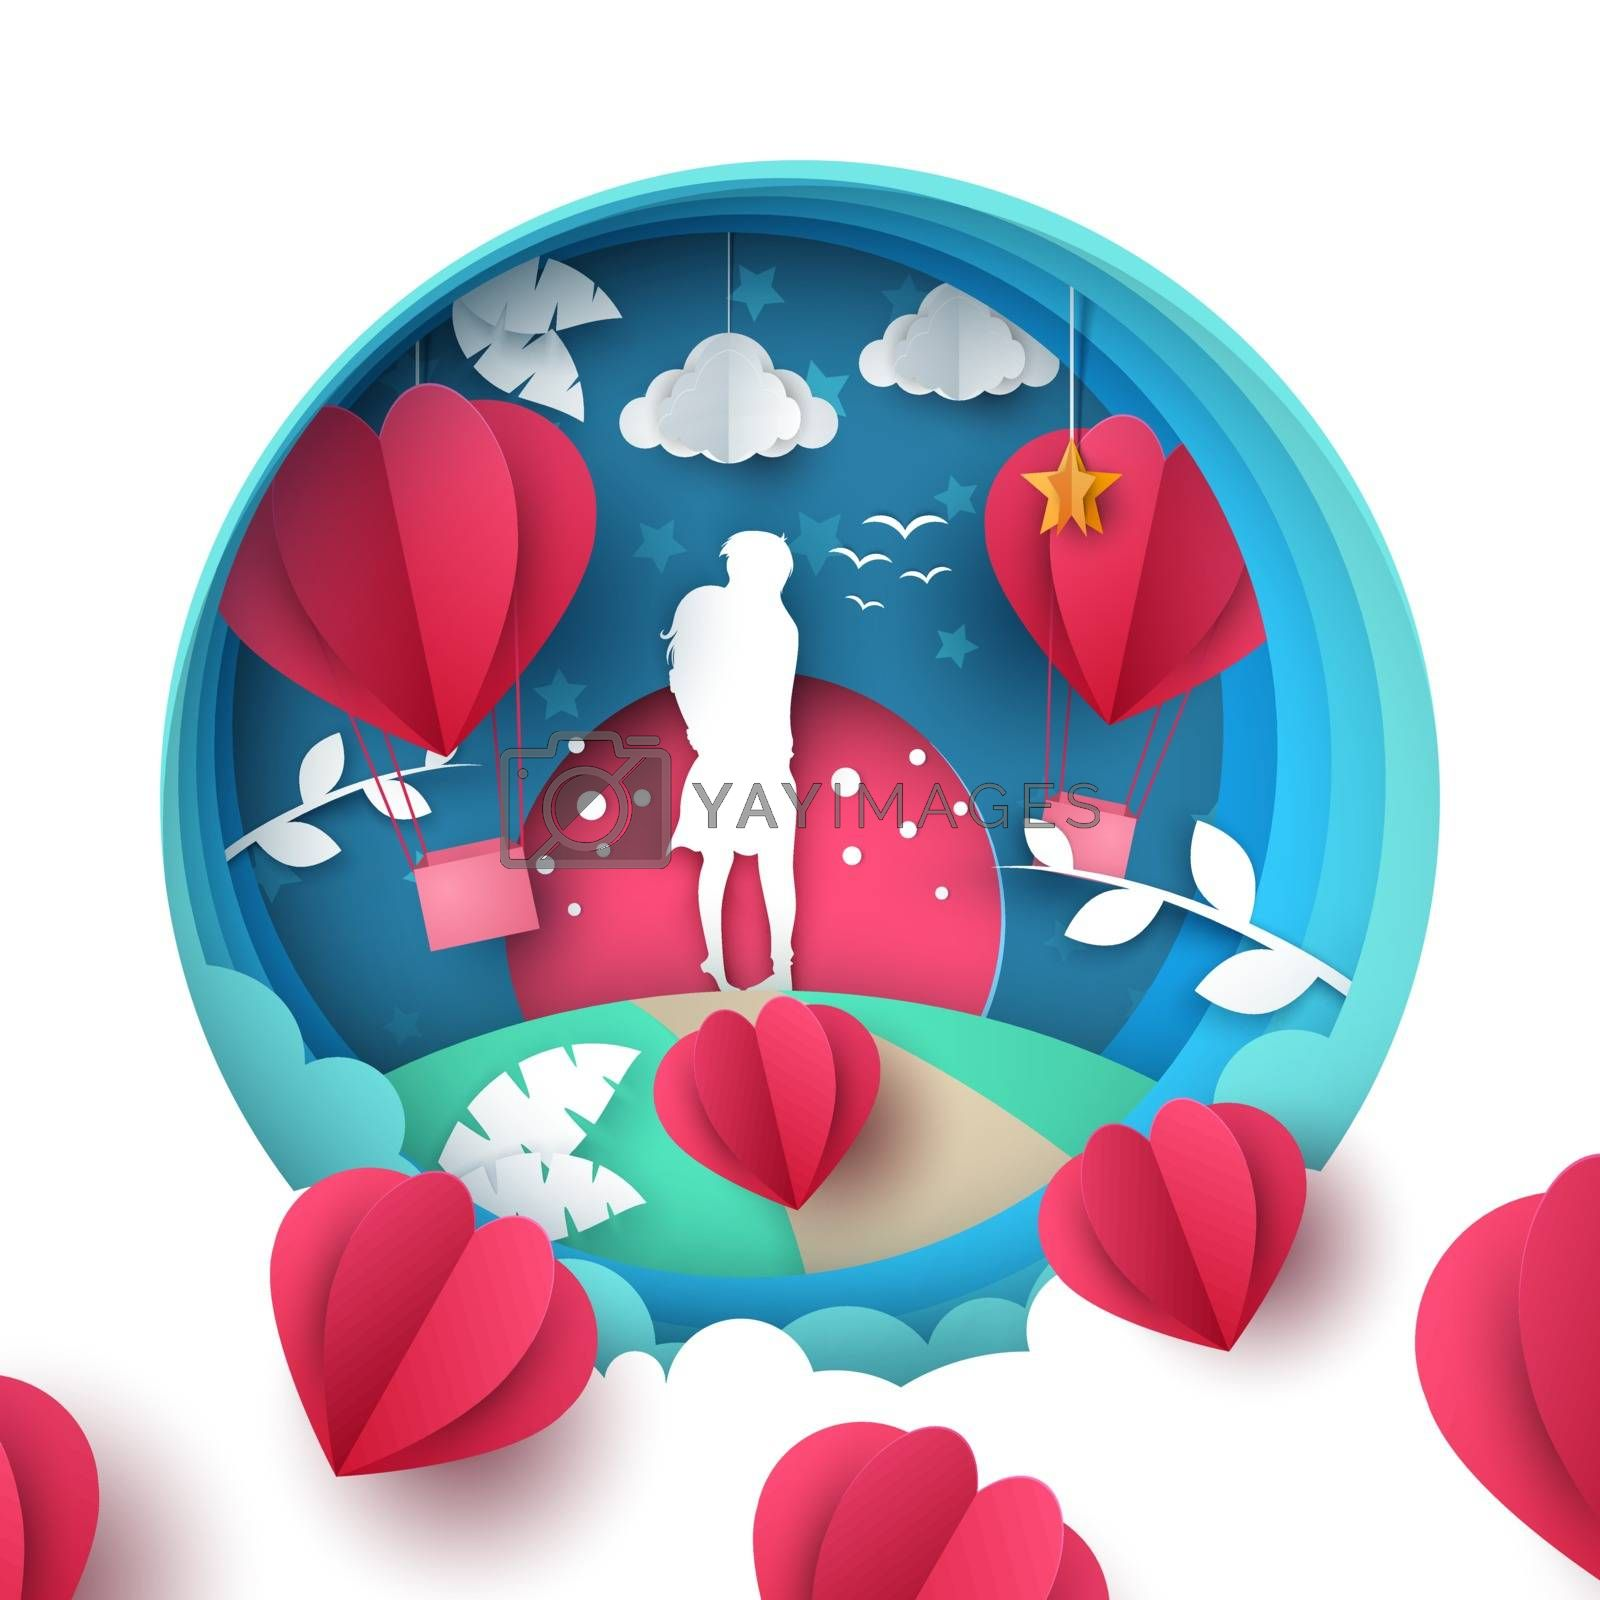 Man and woman love illustration. Paper cartoon landscape. Valentines day. by rwgusev